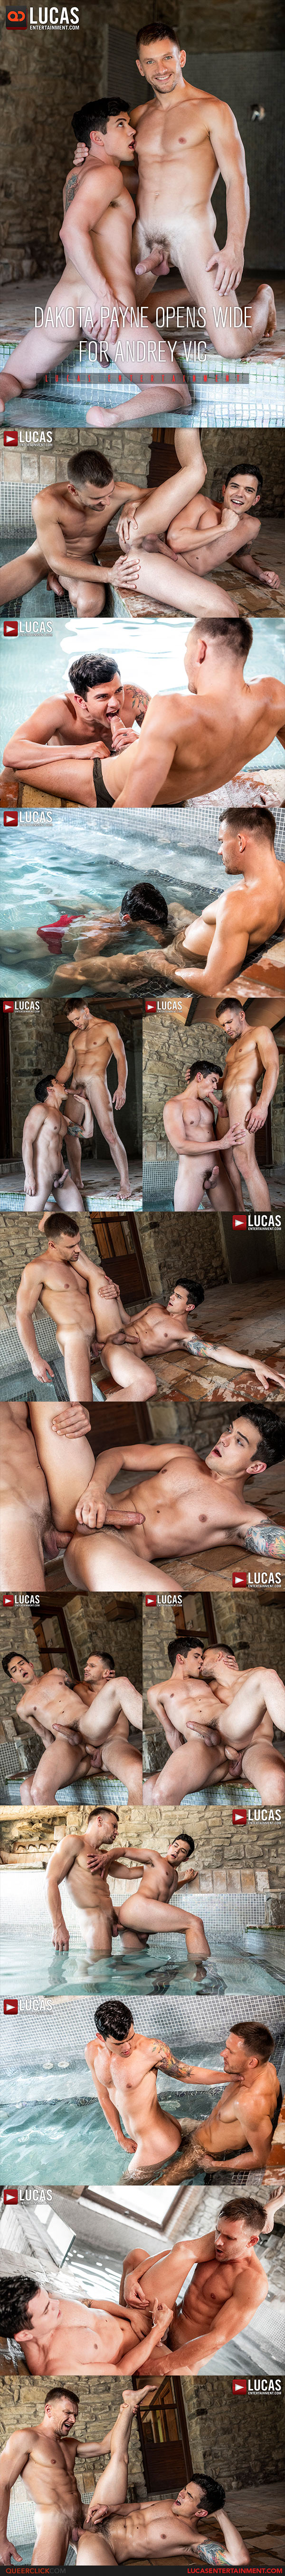 LucasEntertainment: Andrey Vic Fucks Dakota Payne - Bareback